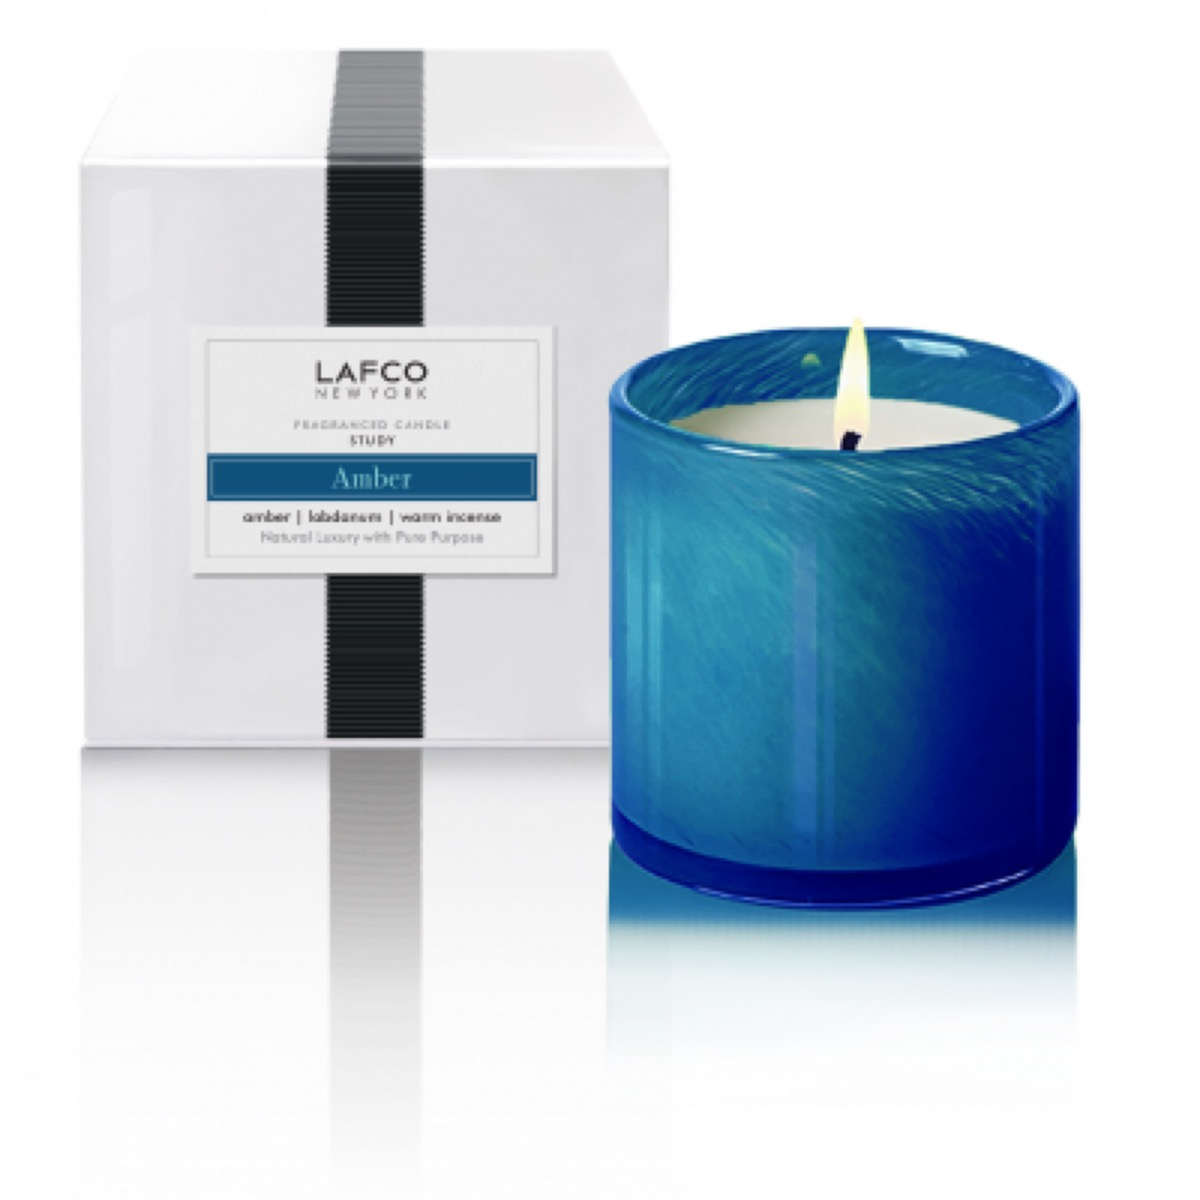 scented candle in blue glass jar with white box next to it